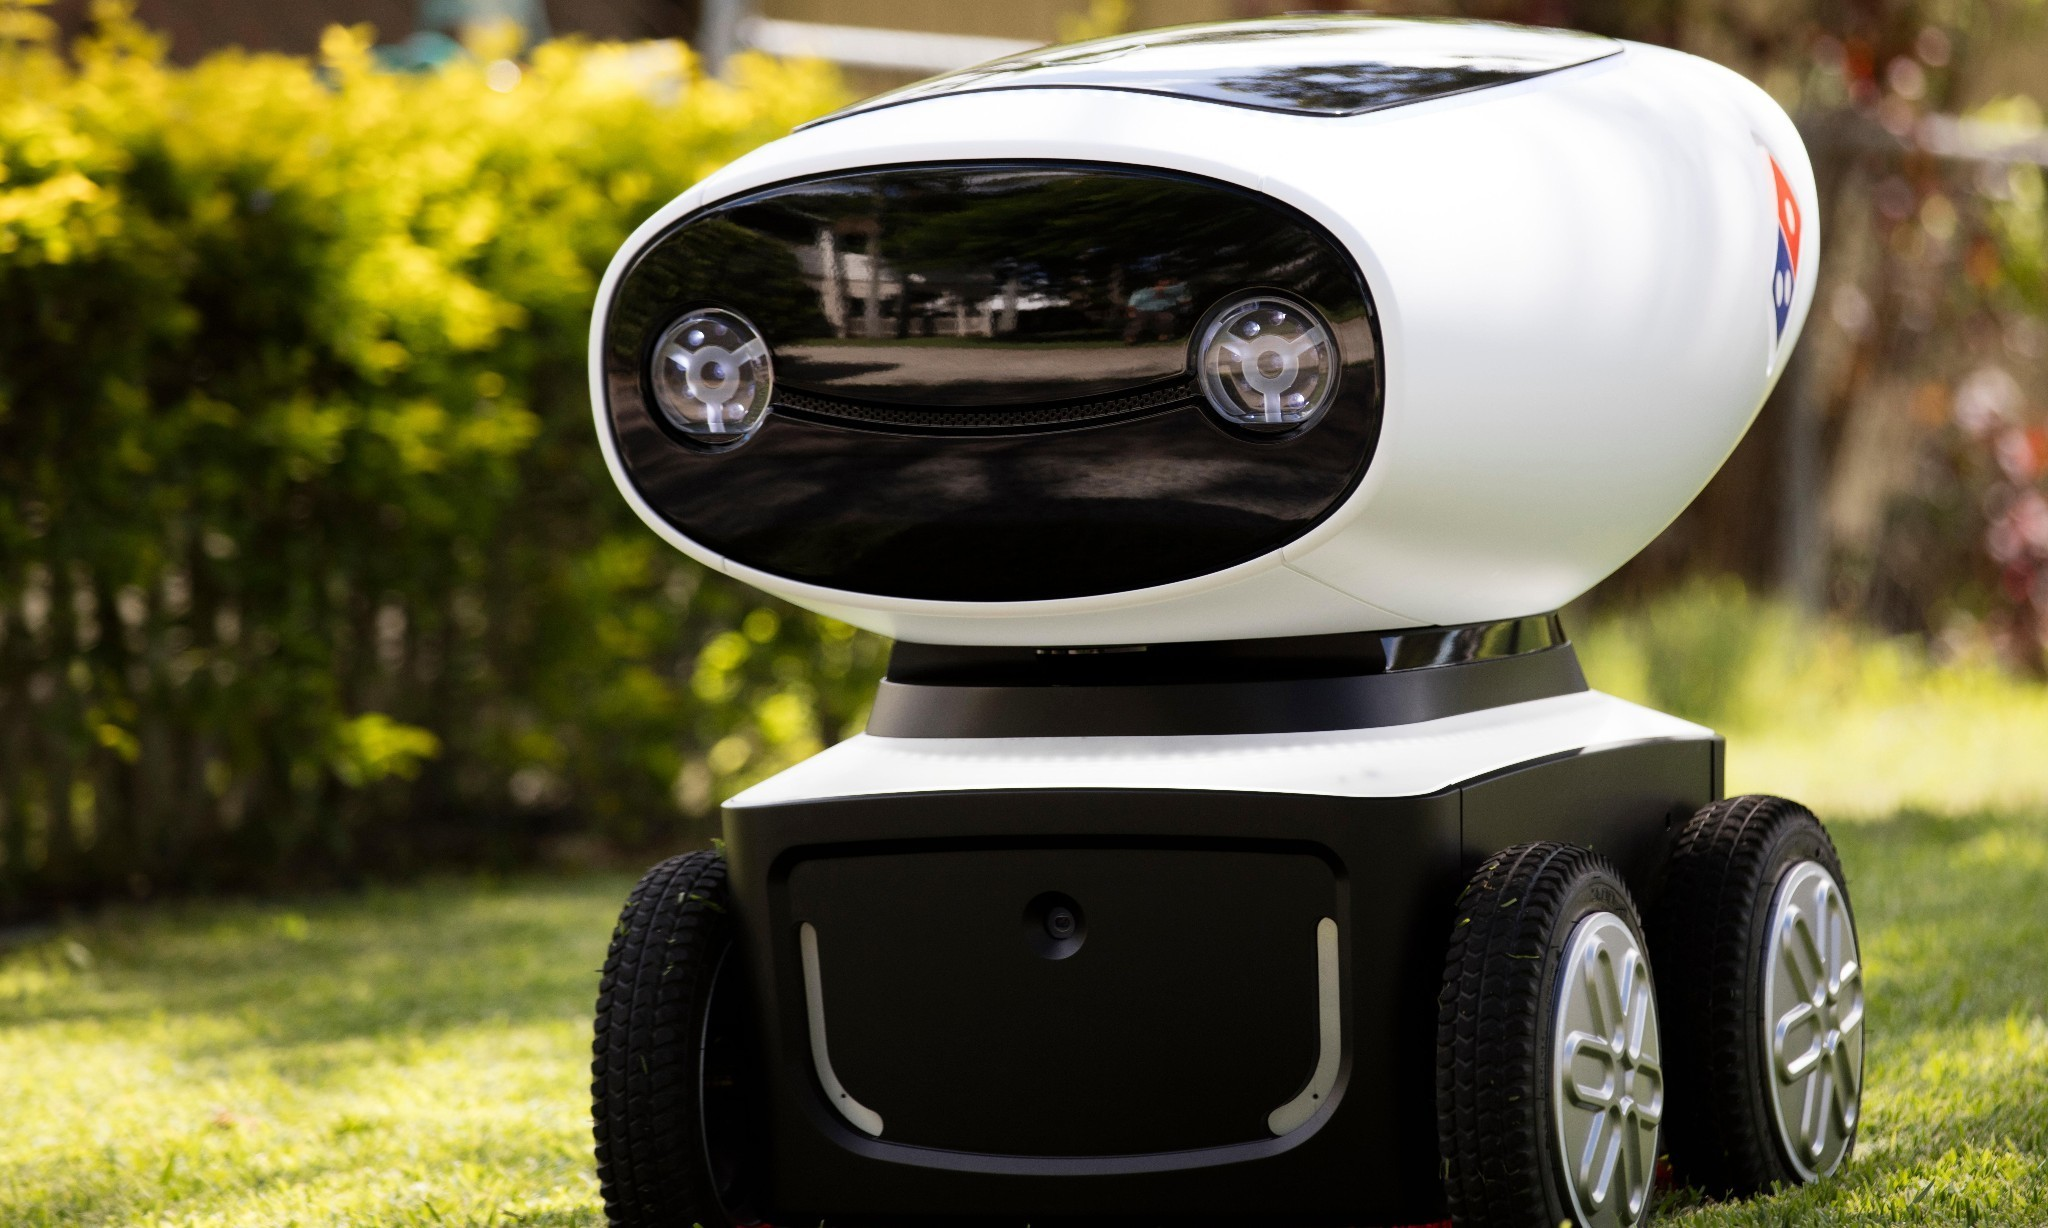 Domino's unveil 'world's first' pizza delivery robot